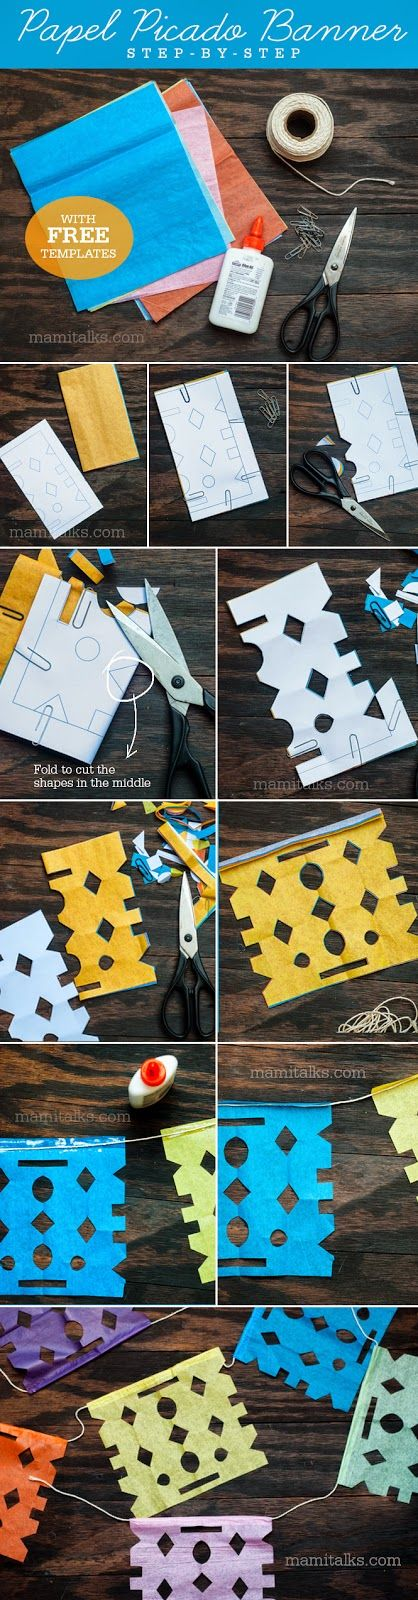 How to make Papel Picado Banners with 3 different FREE templates to download.